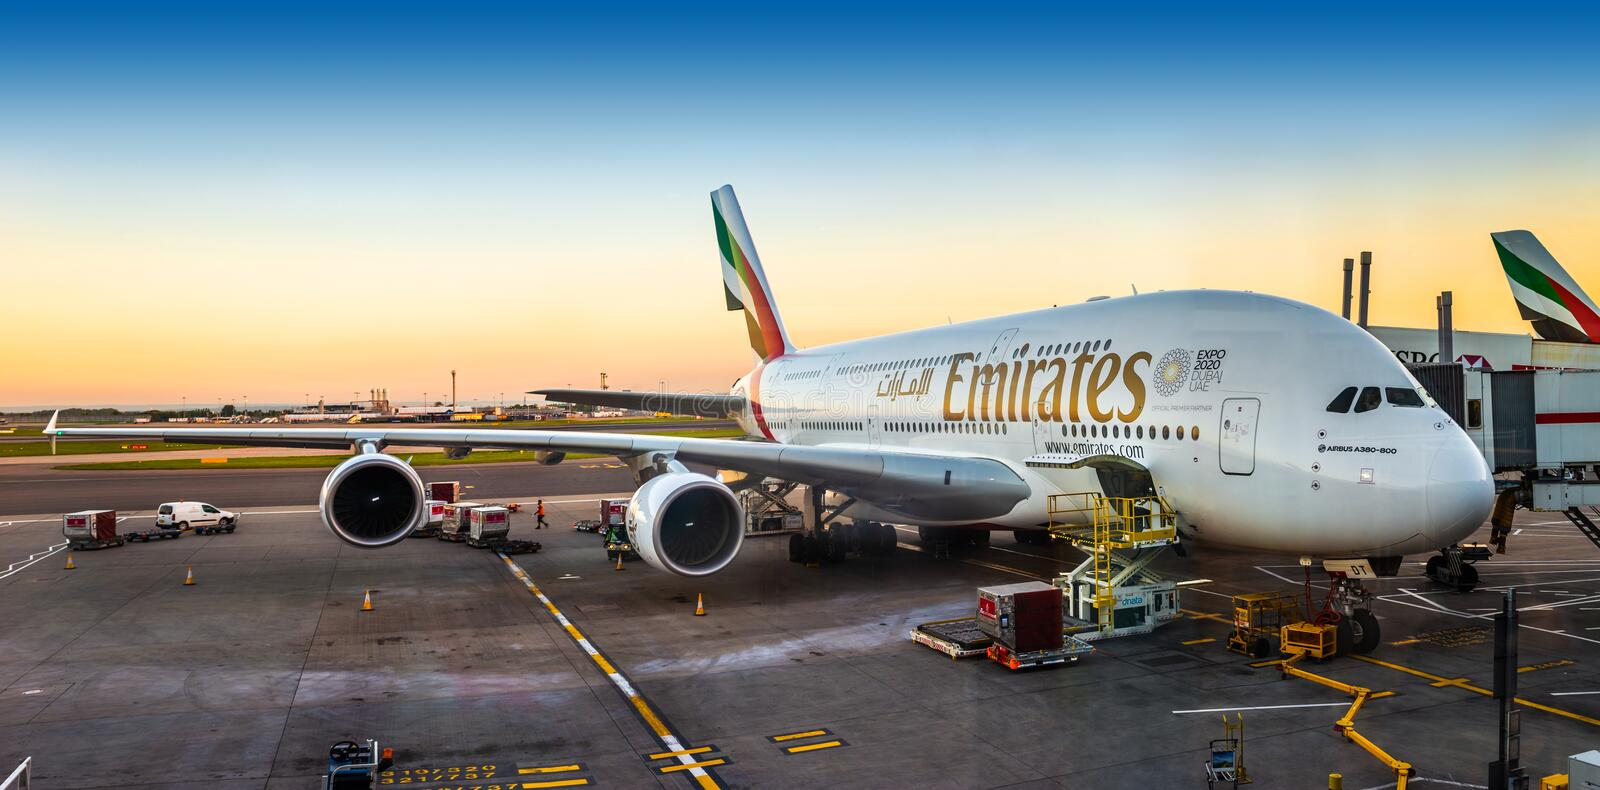 London, England - 05.05.2018: An Emirates Airbus A380-800 super. Jumbo aircraft waiting for passengers and loading at London Heathrow terminal 3 during sunset stock photos